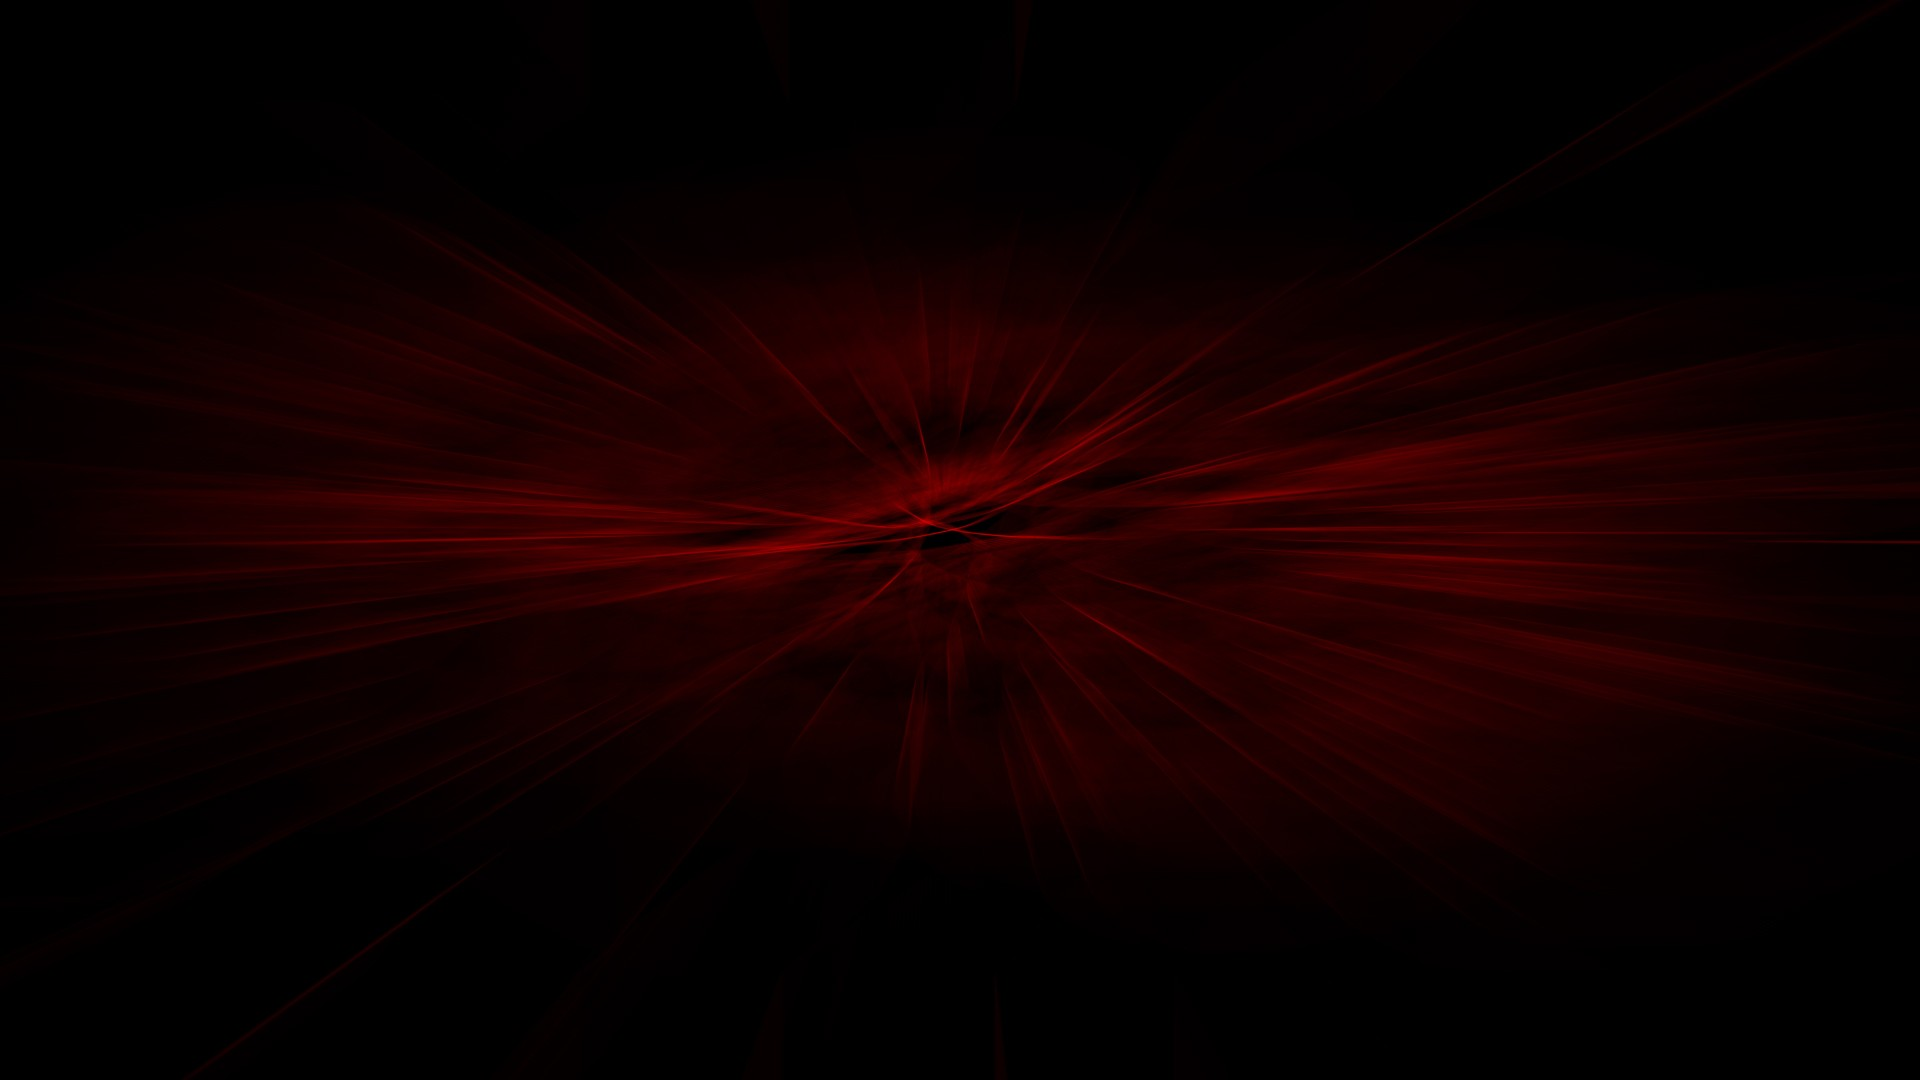 64 Cool Red Backgrounds Download Free Beautiful Backgrounds For